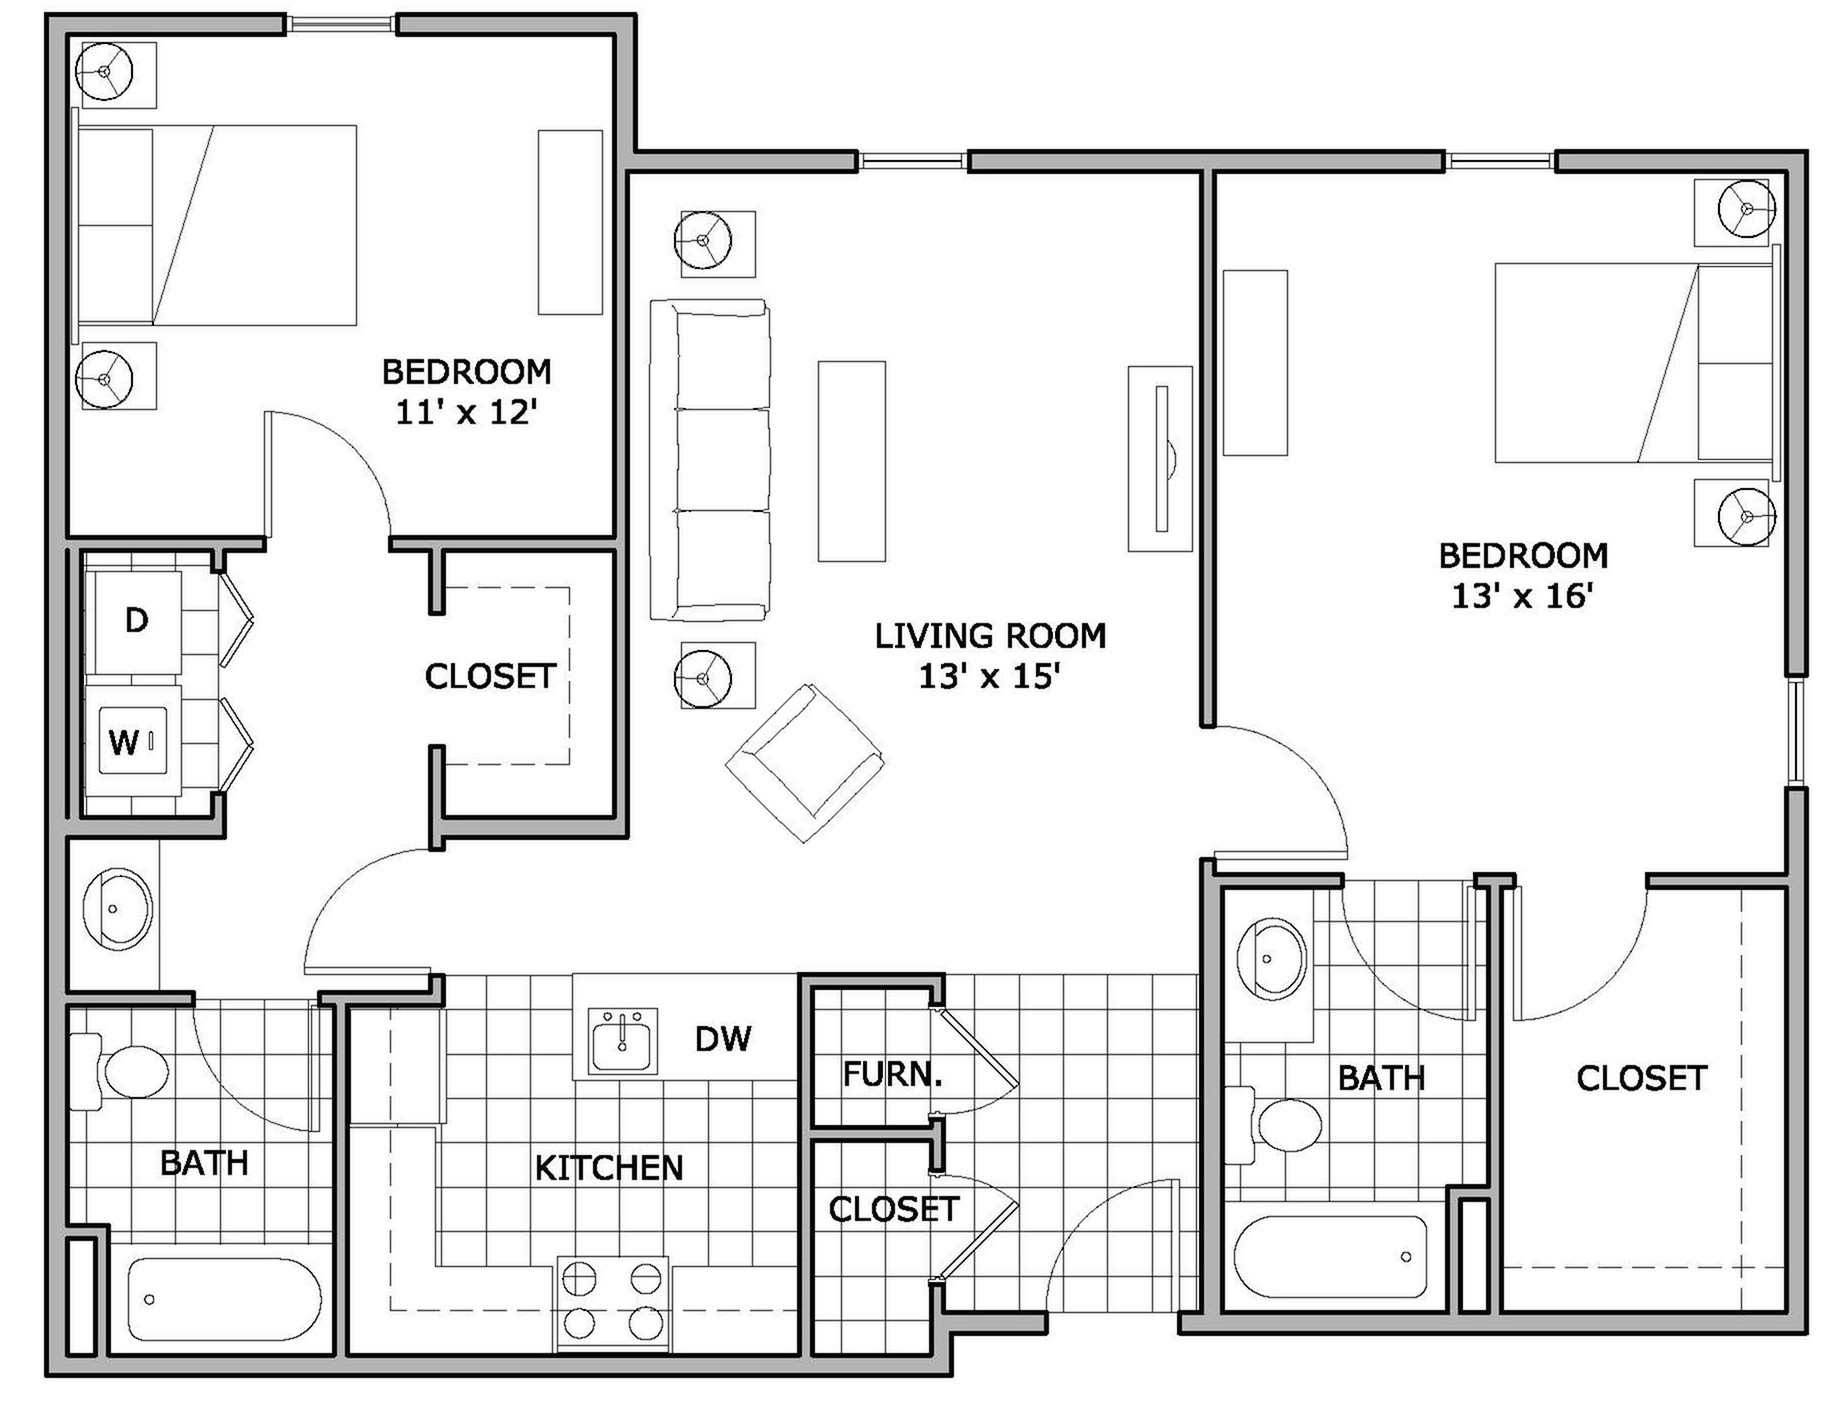 2 bed 2 bathapartment in springfield mo the abbey for Apartment floor plan